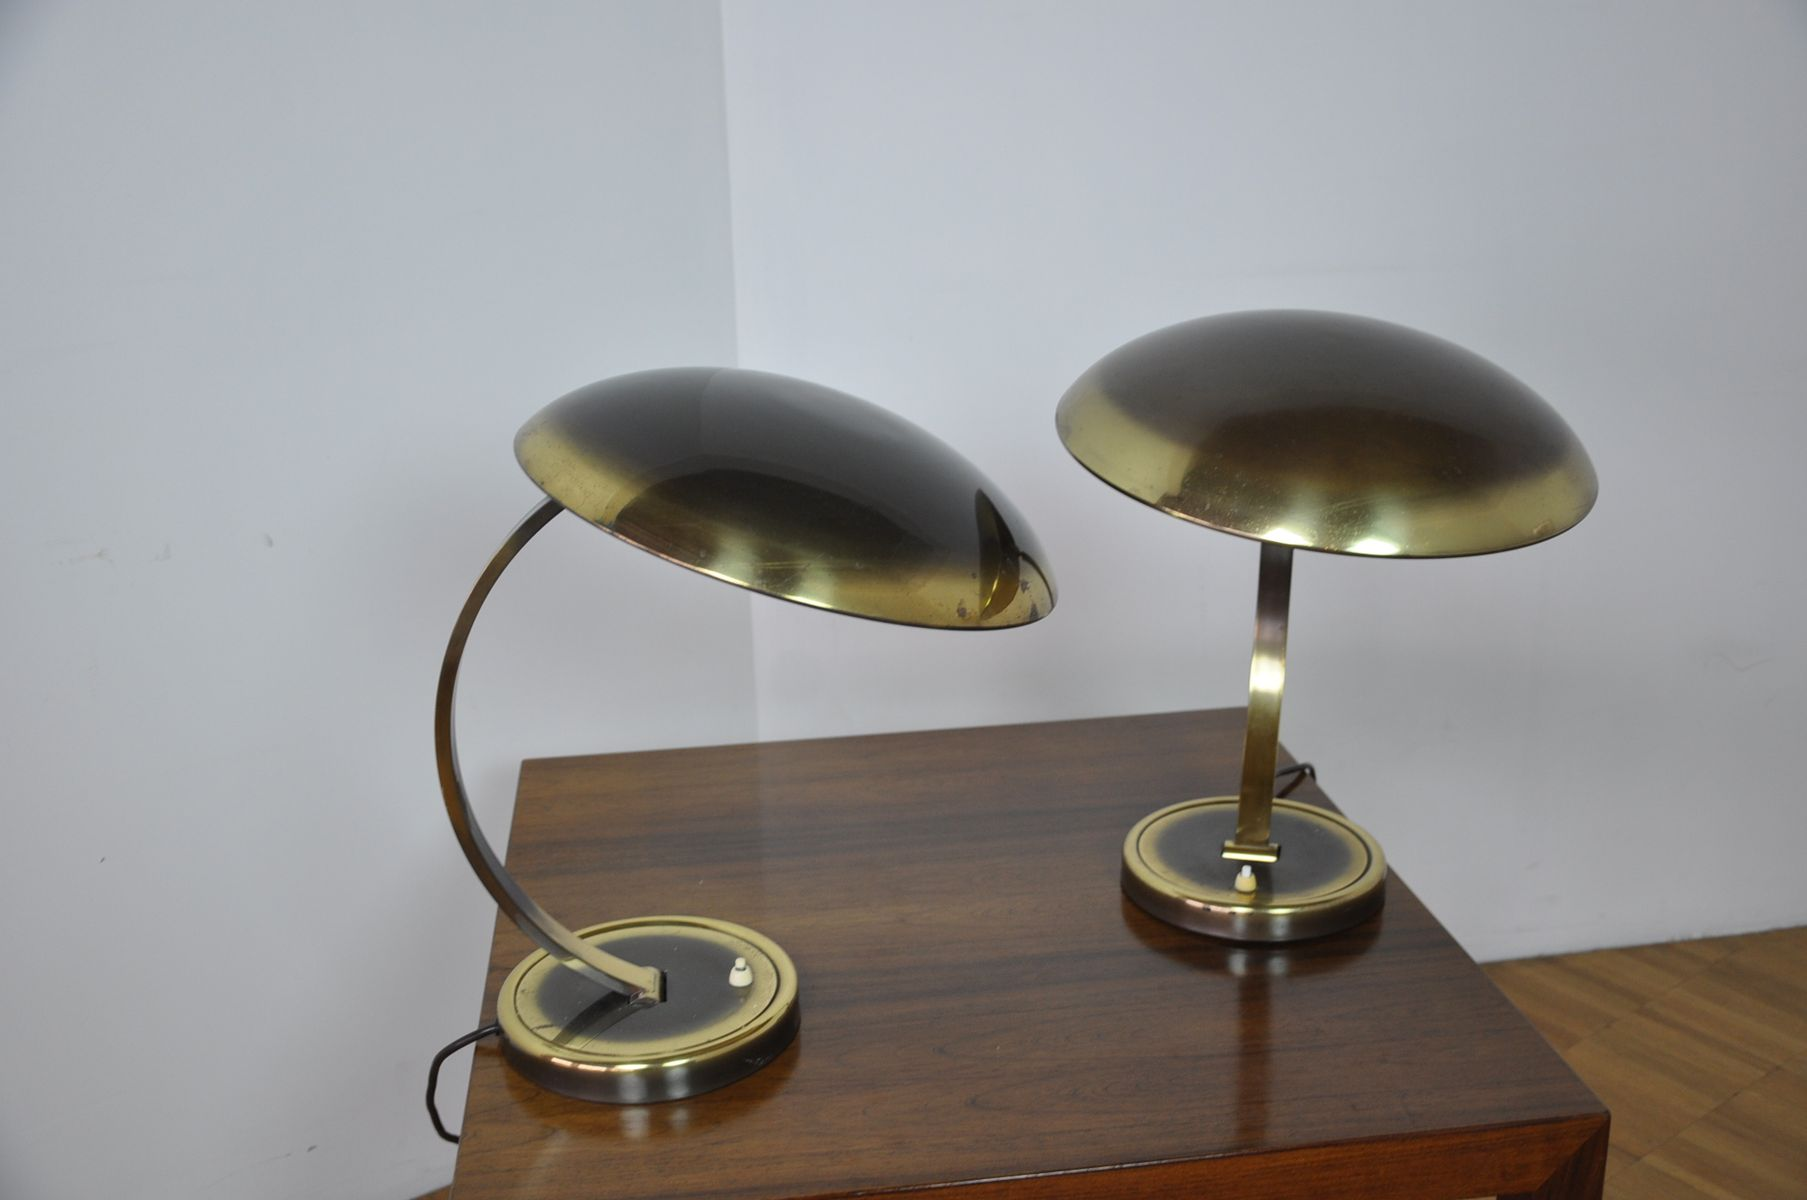 german brass desk lamp by christian dell for kaiser idell 1950s for sale at pamono. Black Bedroom Furniture Sets. Home Design Ideas